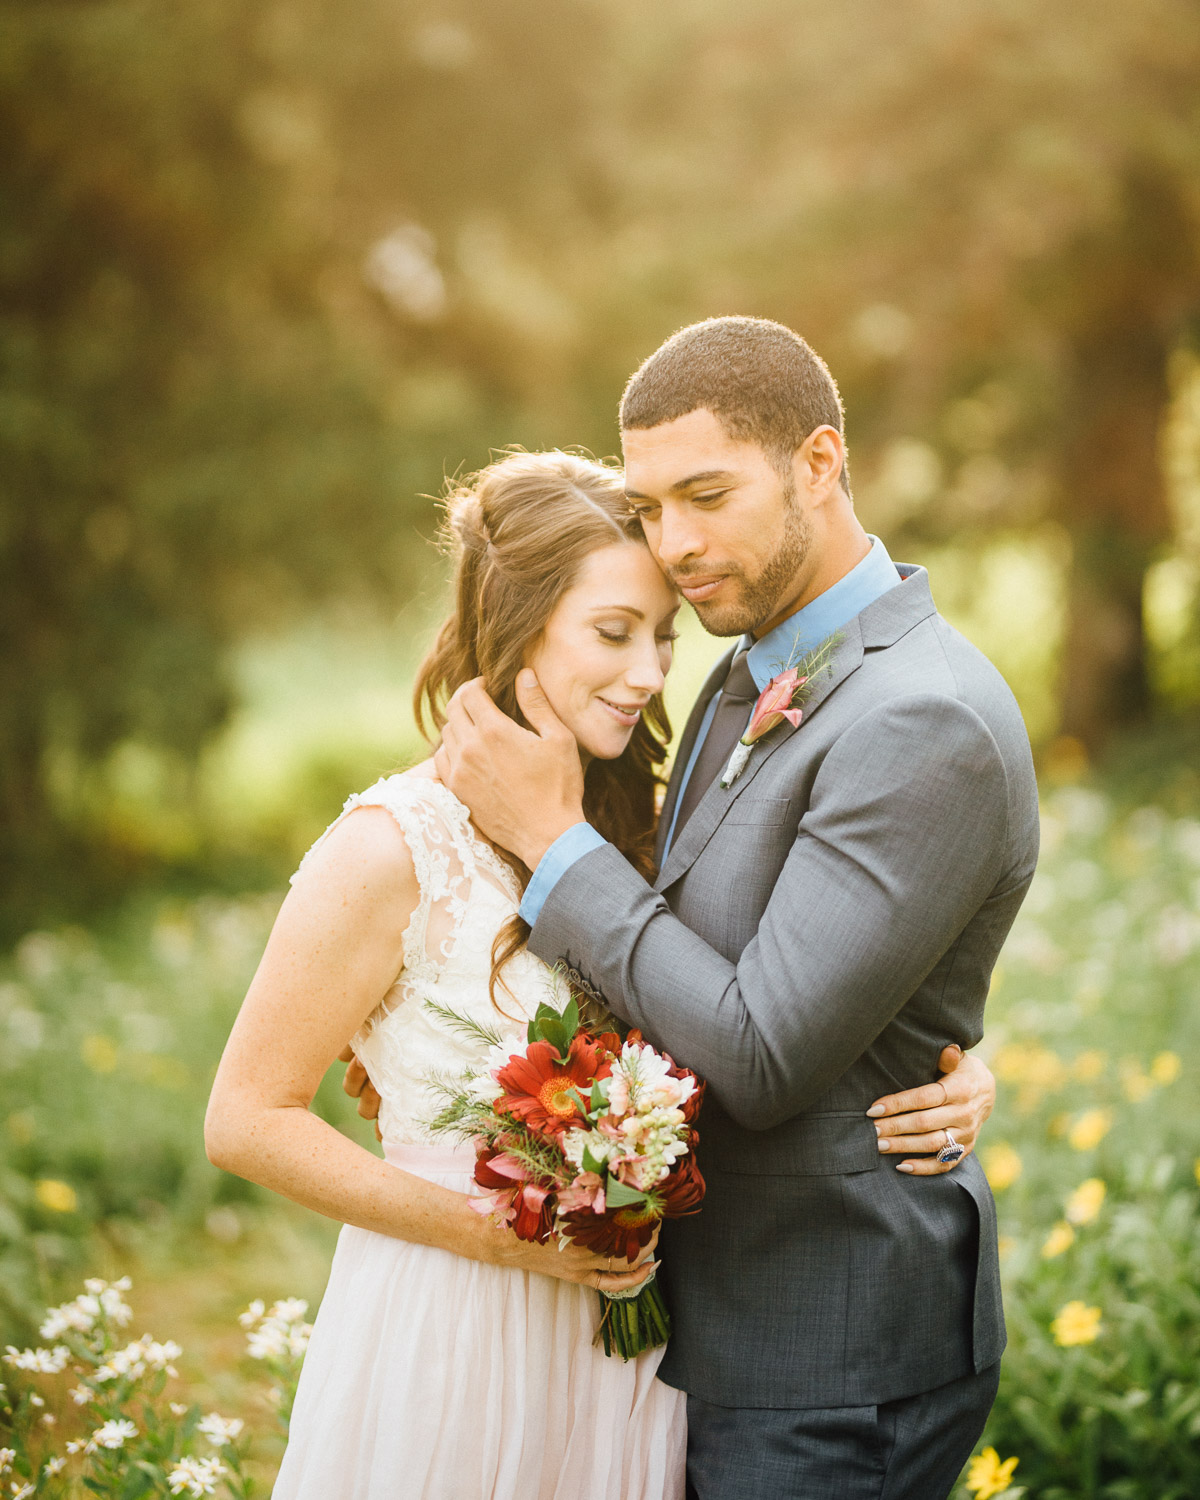 epic-wedding-golden-hour Salt Lake City | Mountain Wedding Inspiration